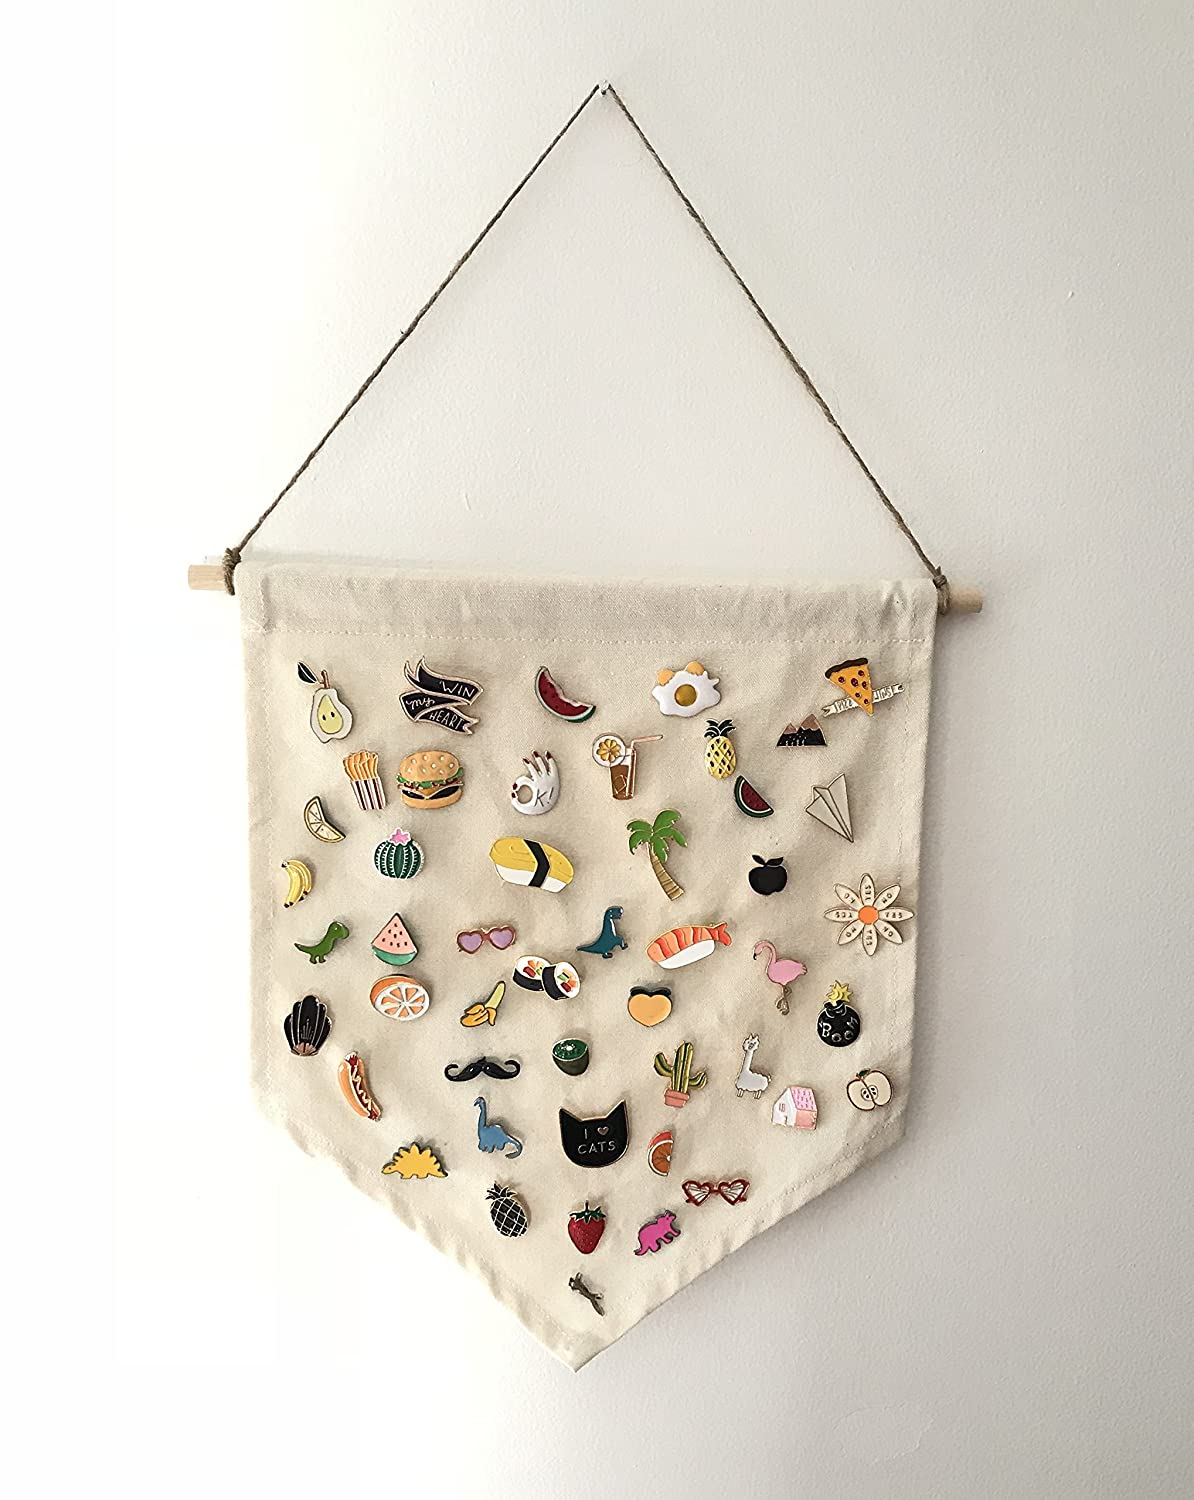 Enamel Pin Wall Display Banner - Organize and Display Your Enamel